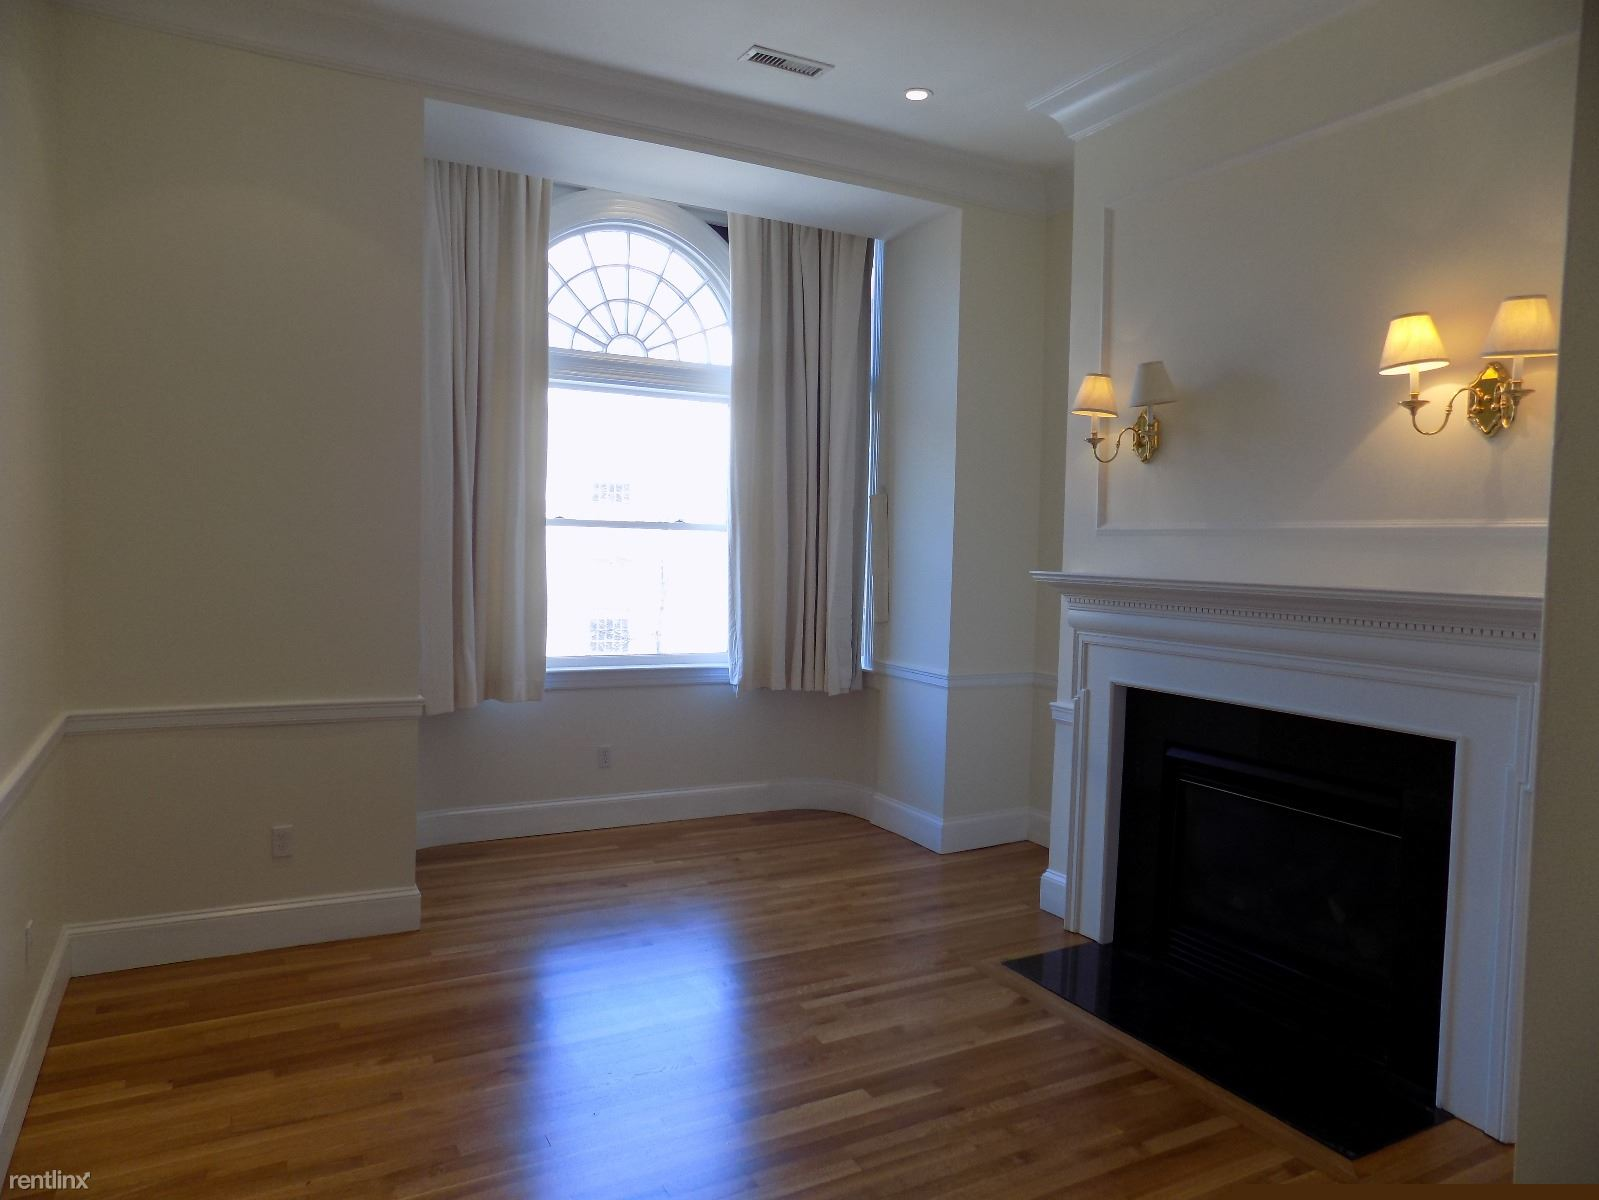 22 Beacon St, Boston, MA - $7,000